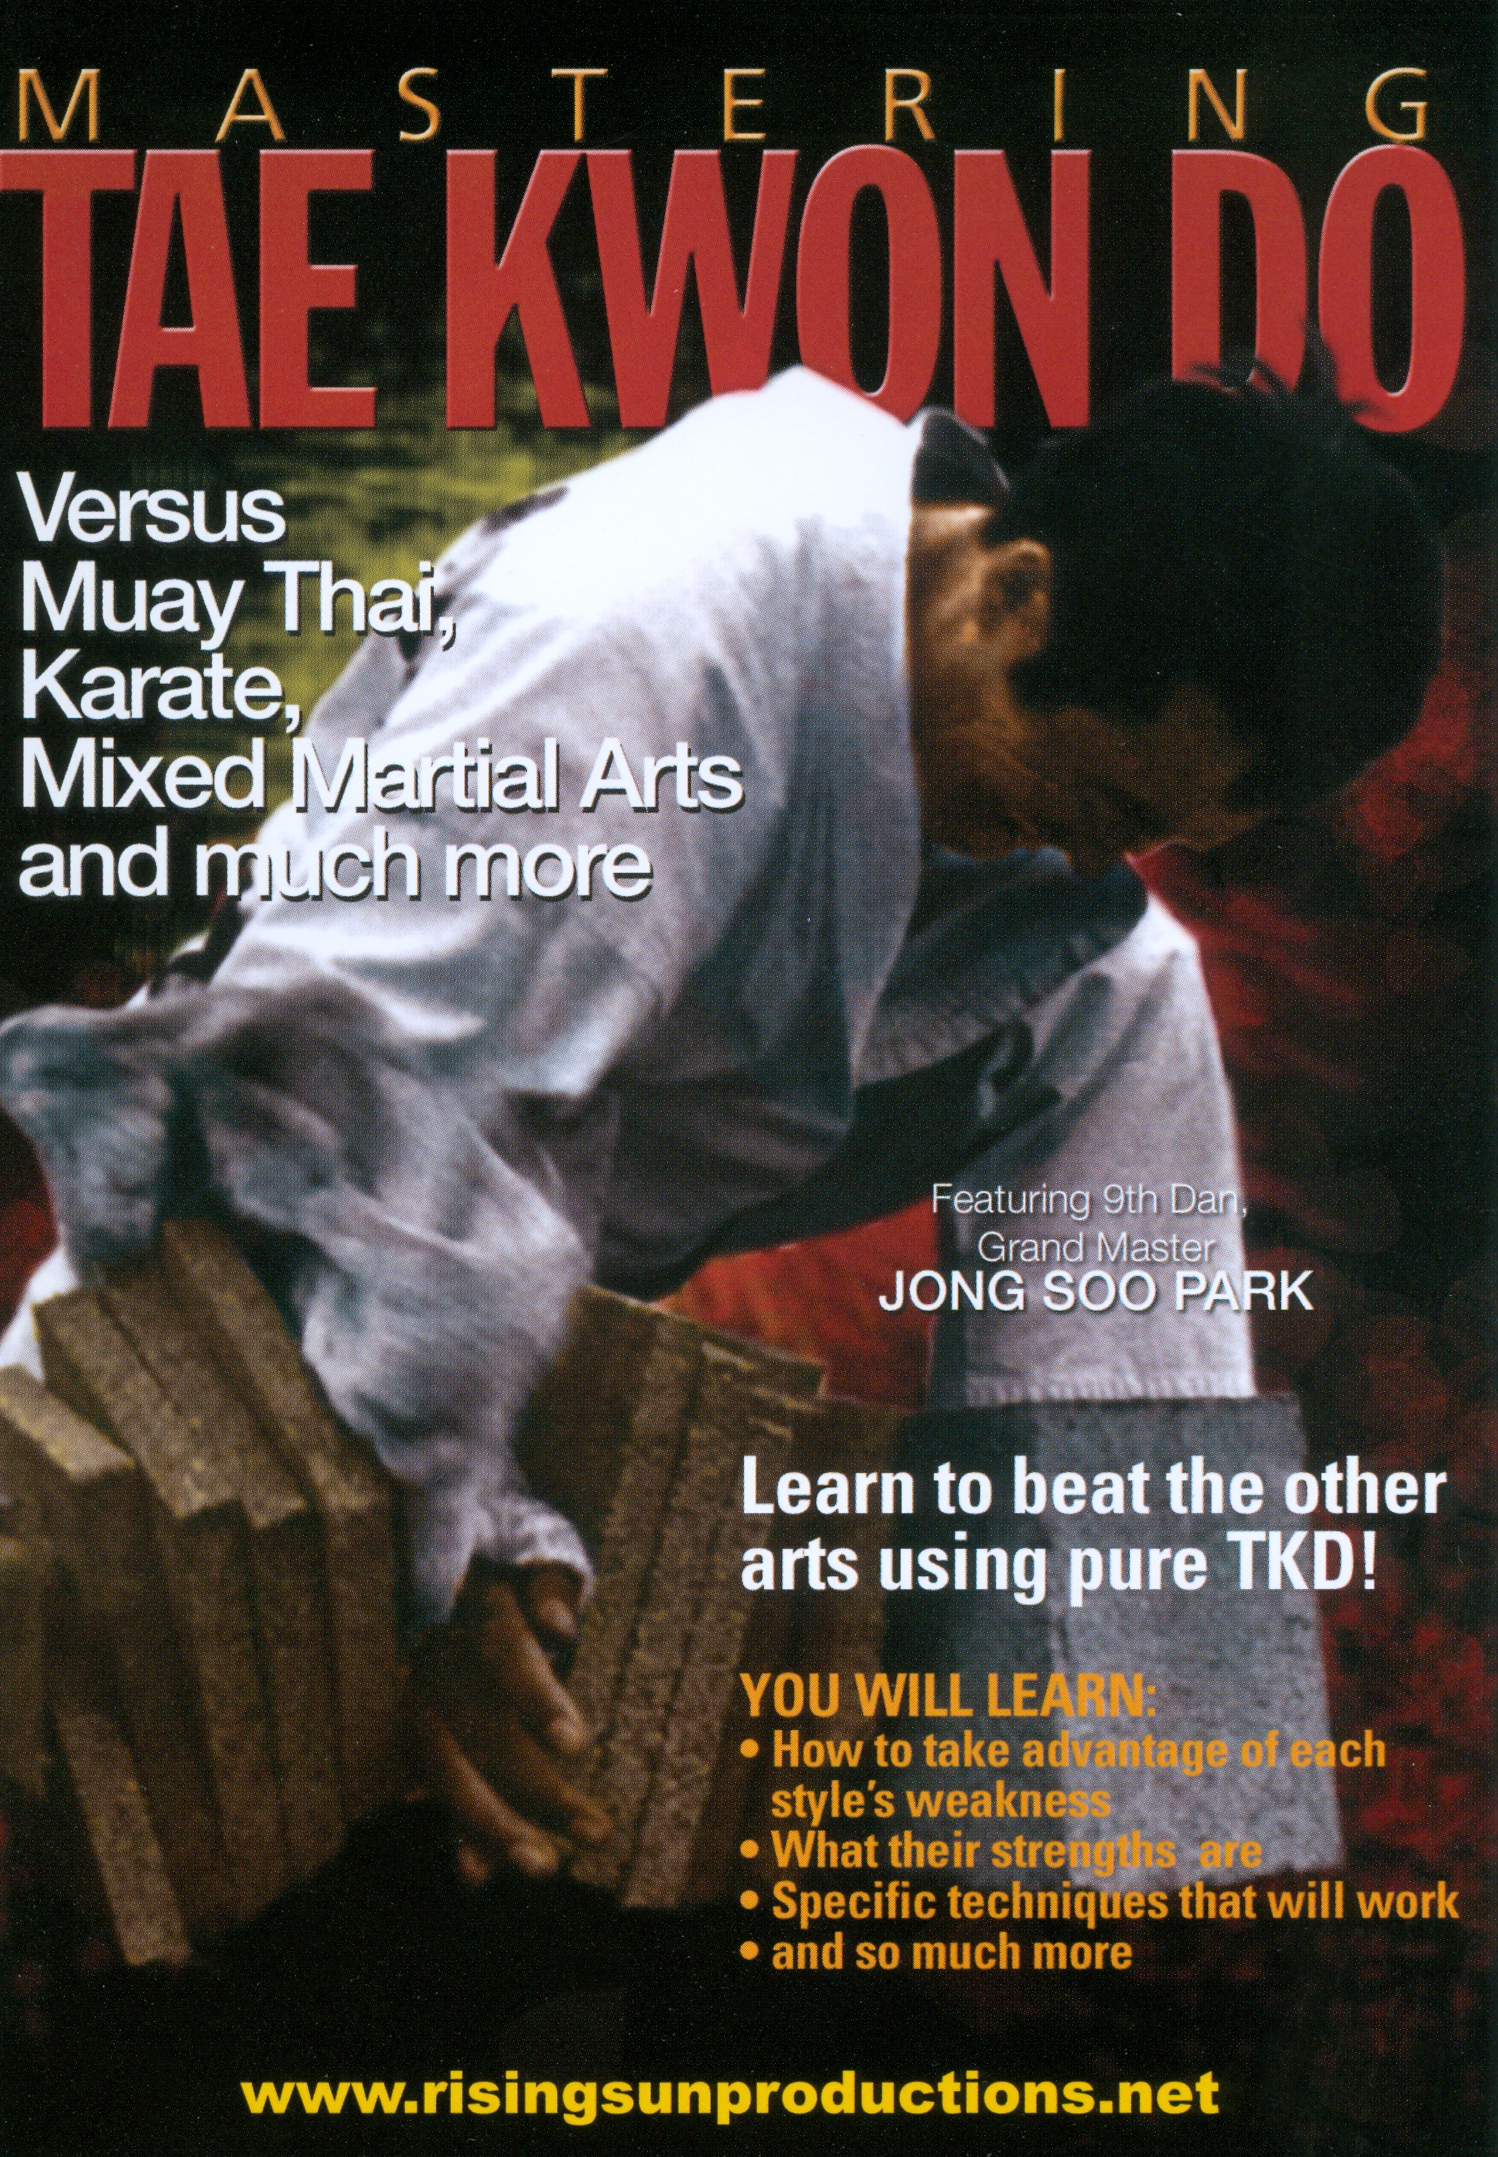 Mastering Tae Kwon Do: Versus Muay Thai, Karate, Mixed Martial Arts and Much More